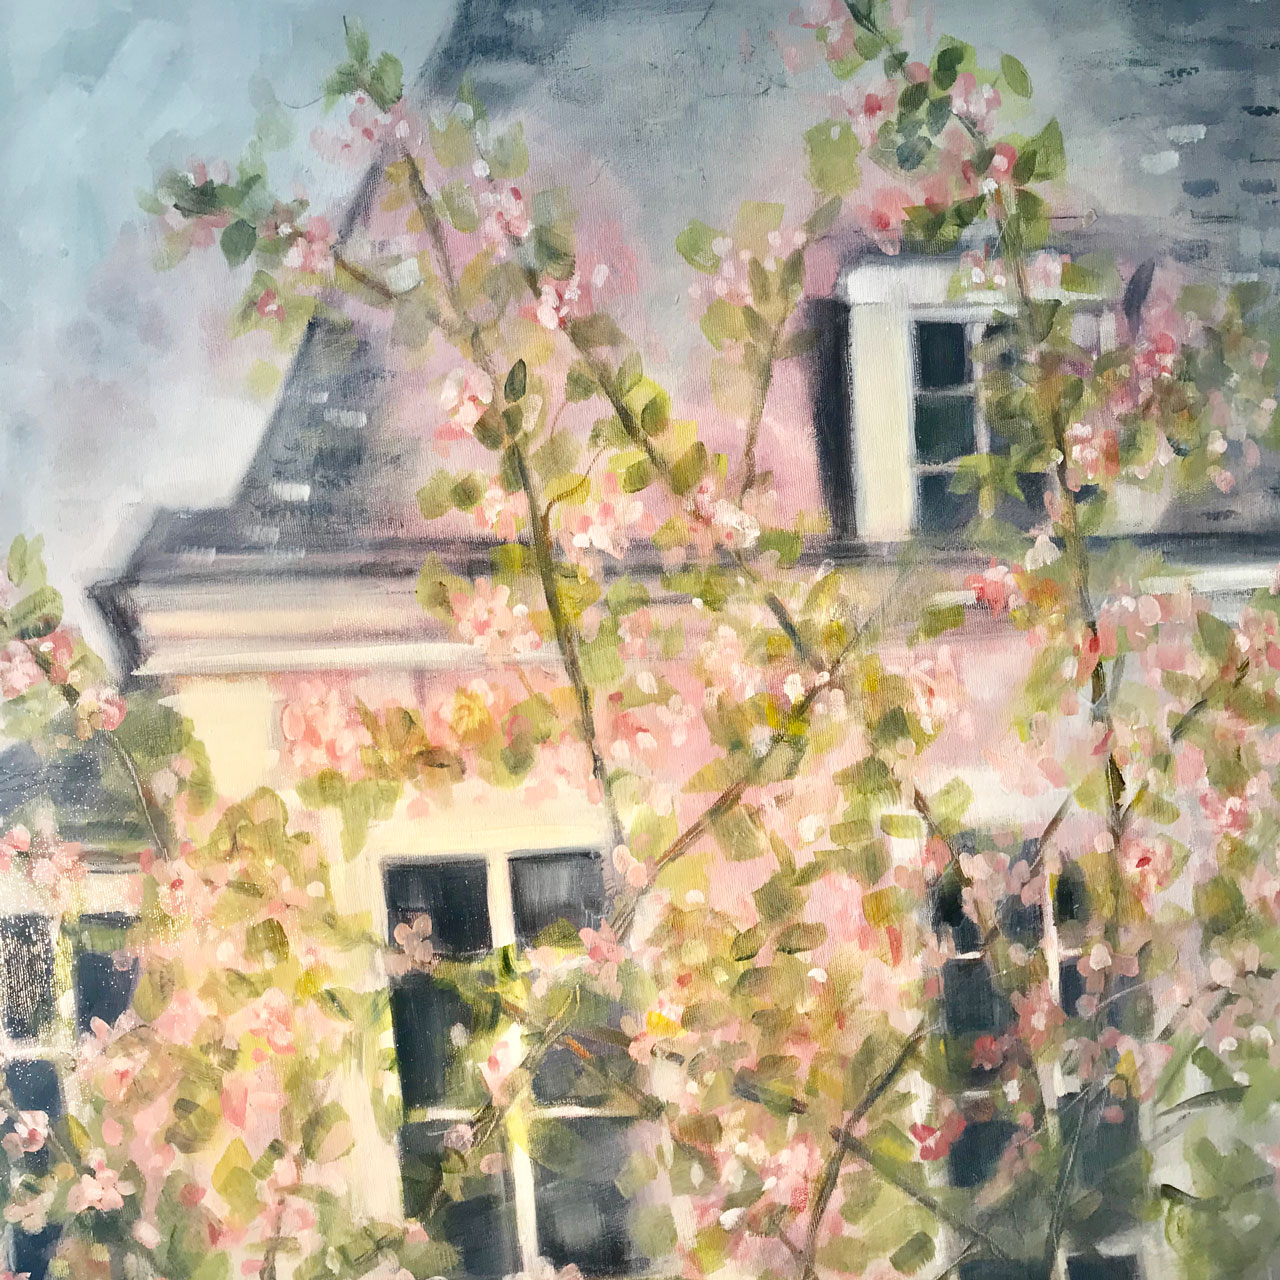 Chateau Blossoms 30 x 30 Sold